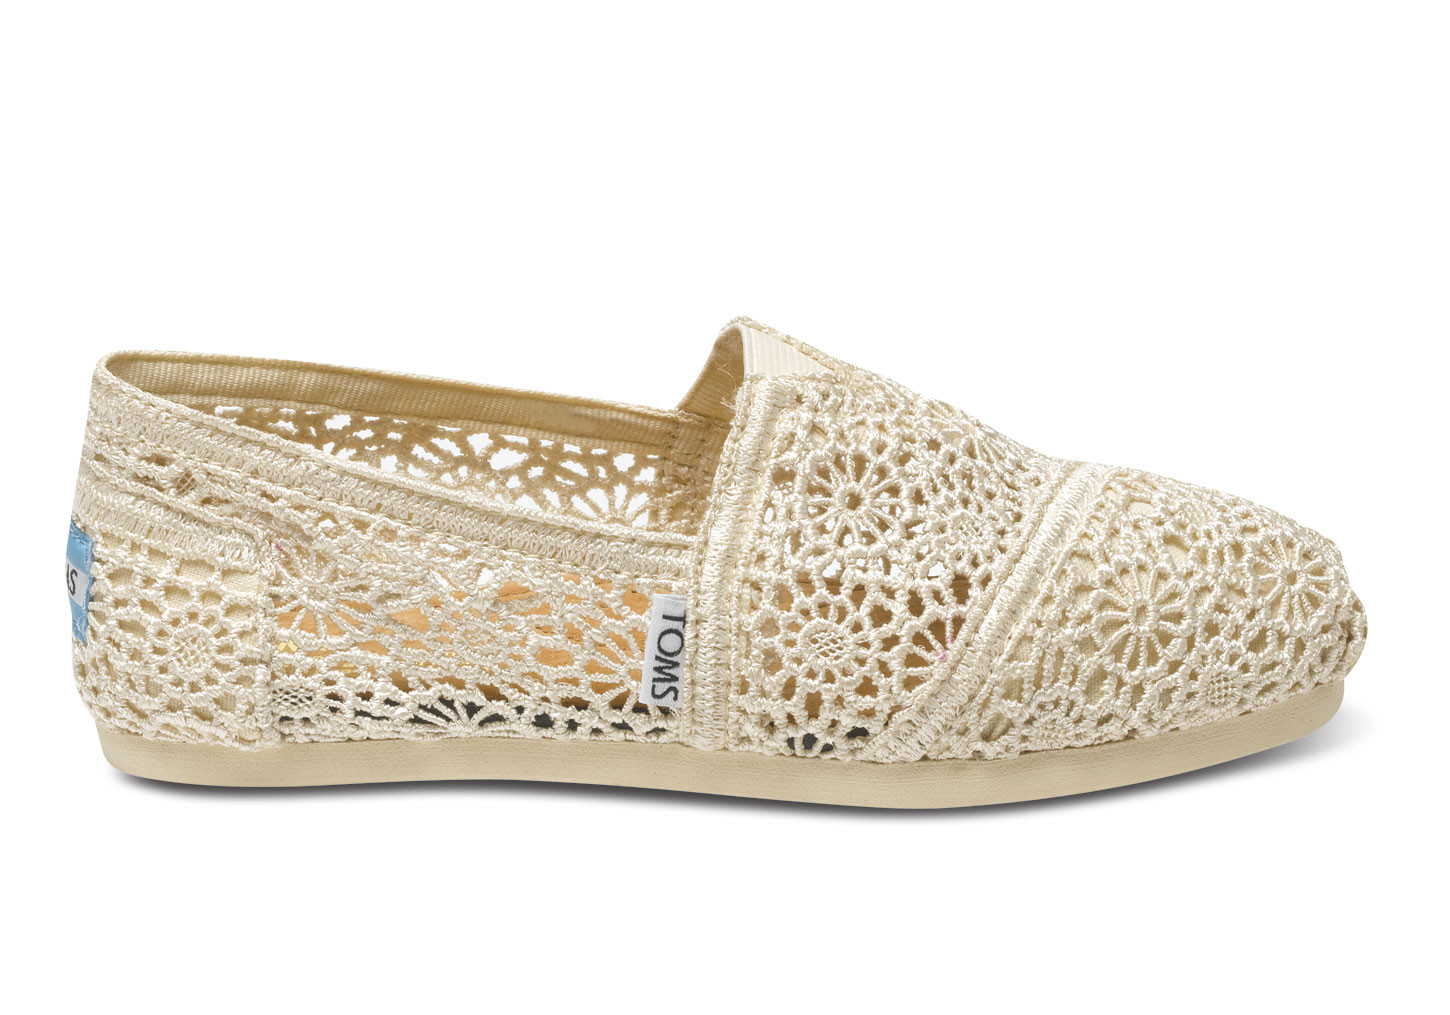 Going Back to Classics TOMS Canvas Shoes ShopandBox